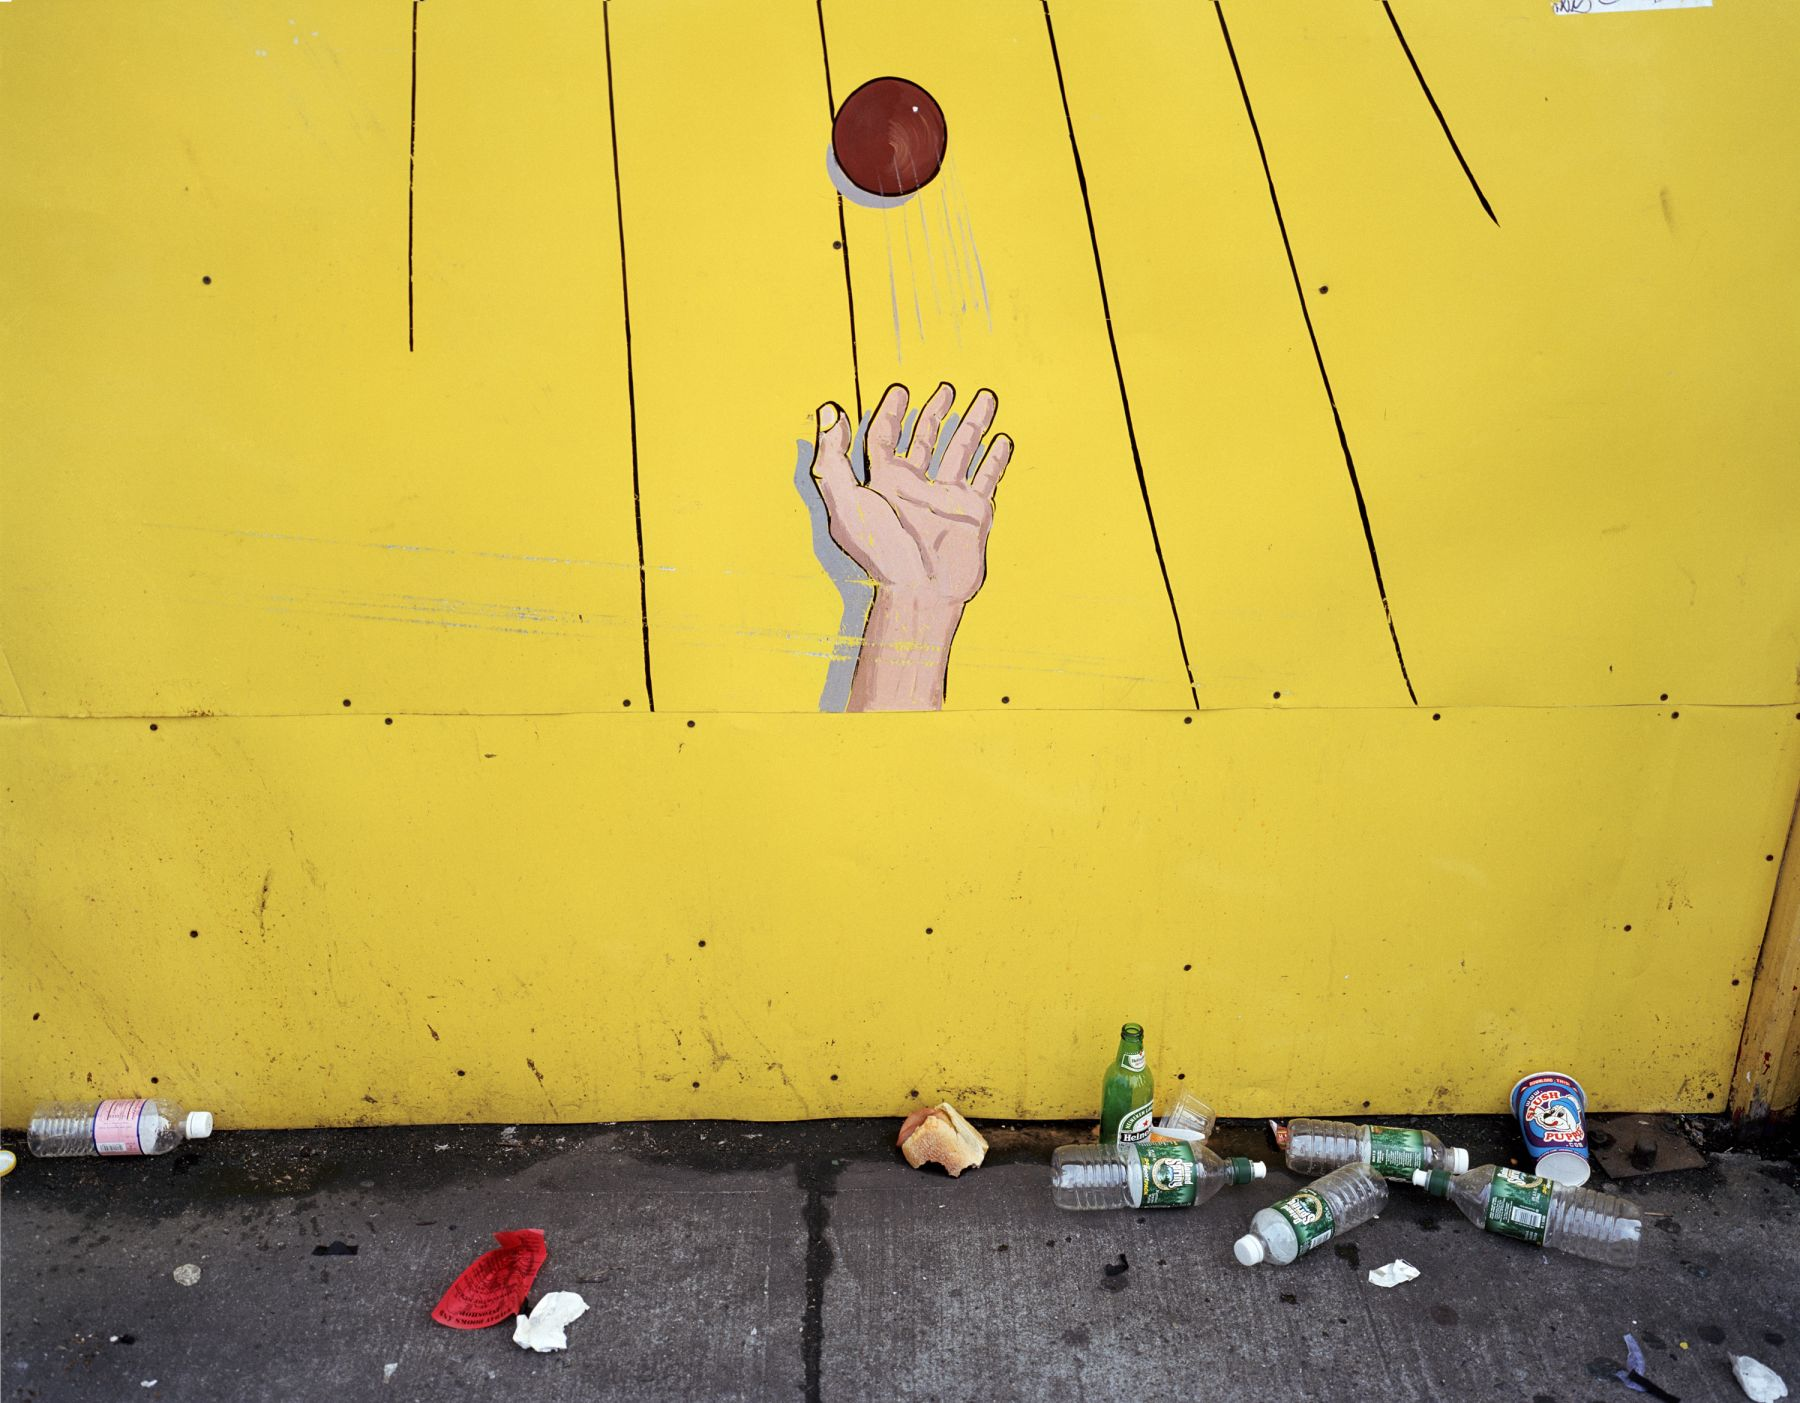 Ball Toss, Coney Island, 2001. Archival pigment print, 30 x 40 inches.